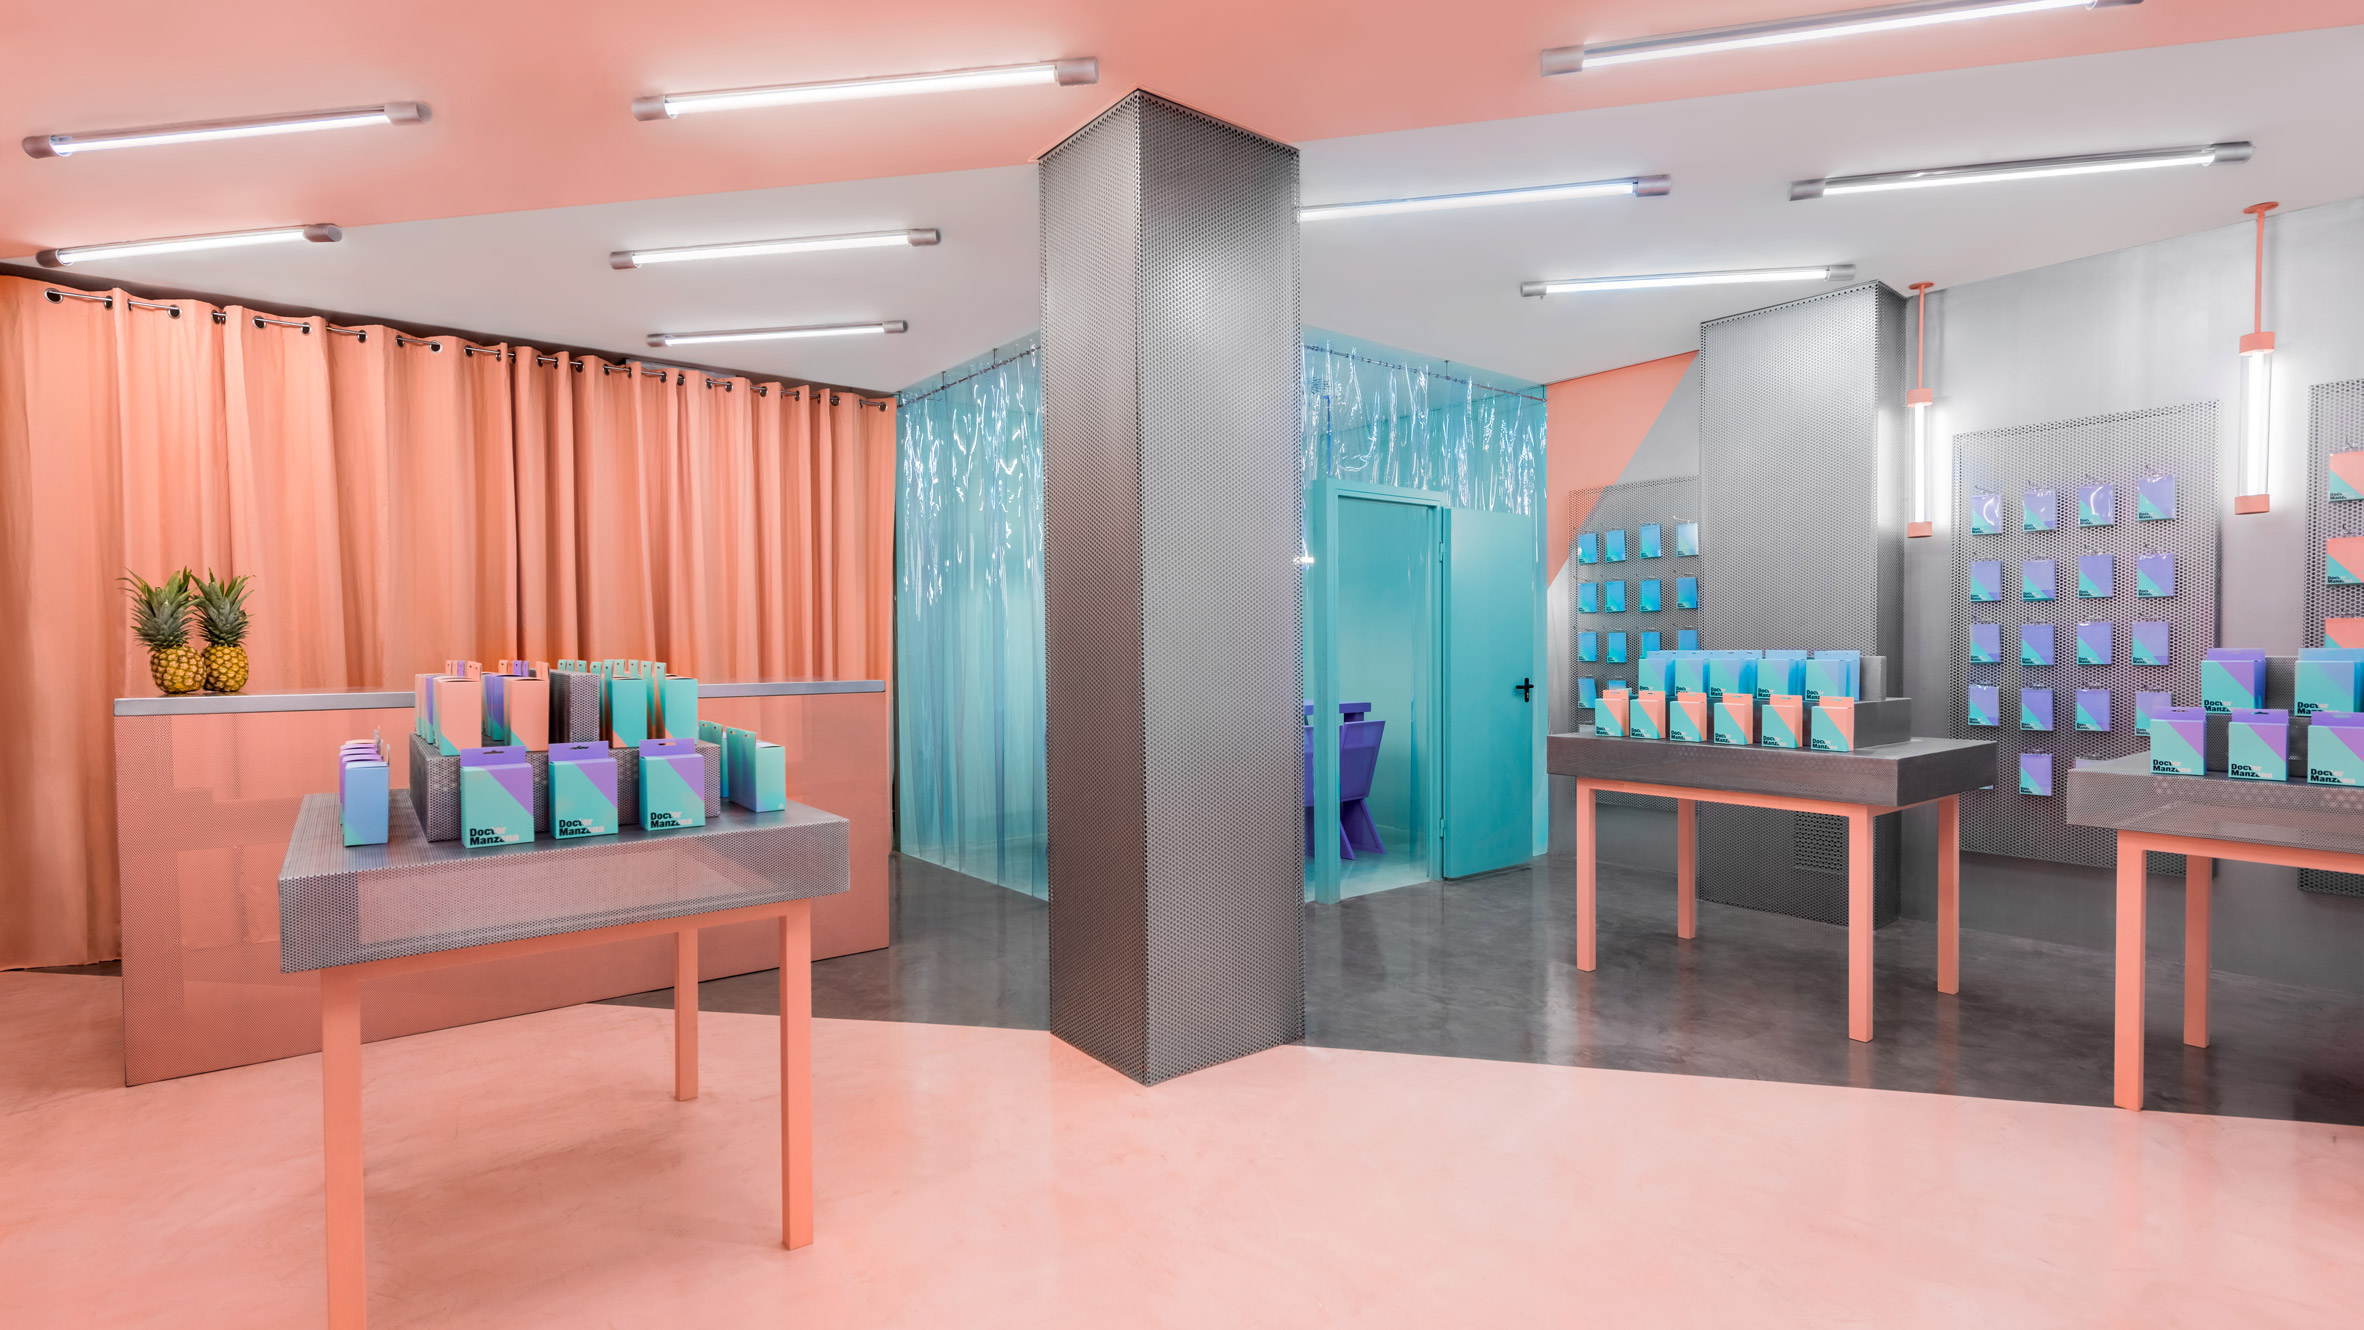 masquespacio creates clashing interior for a phone repair shop in